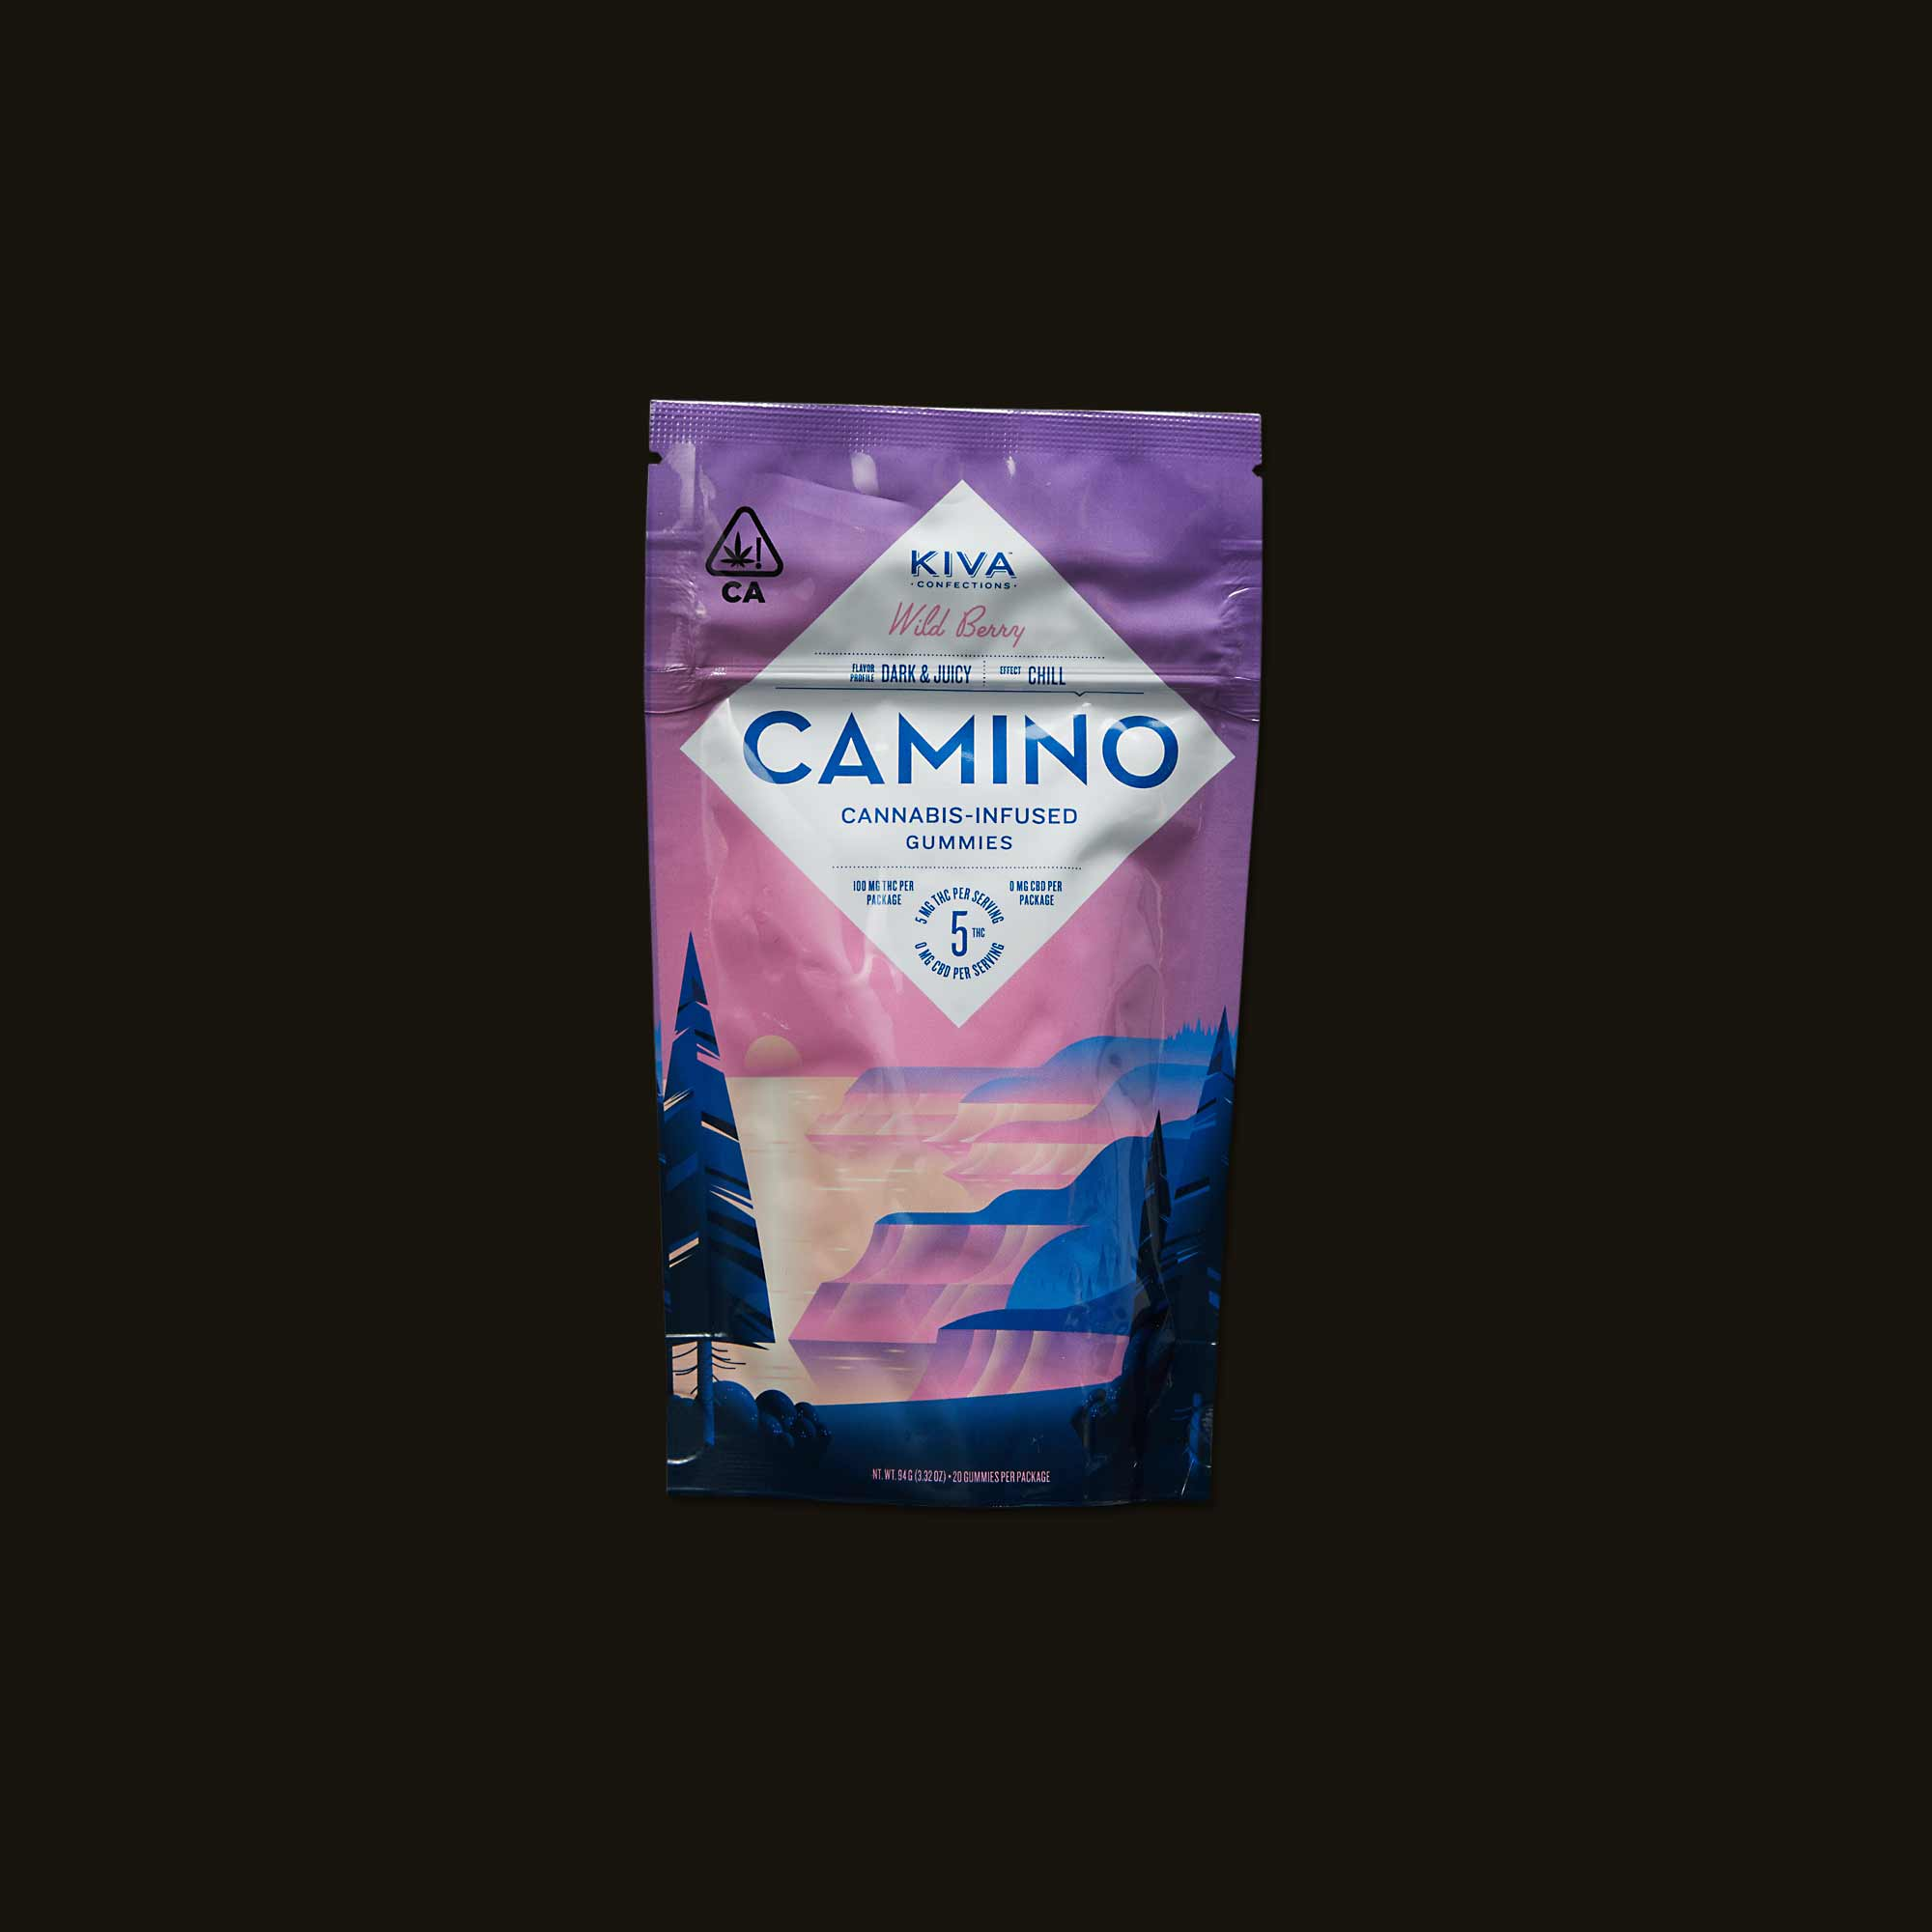 Package of Camino Wild Berry Gummies as reviewed